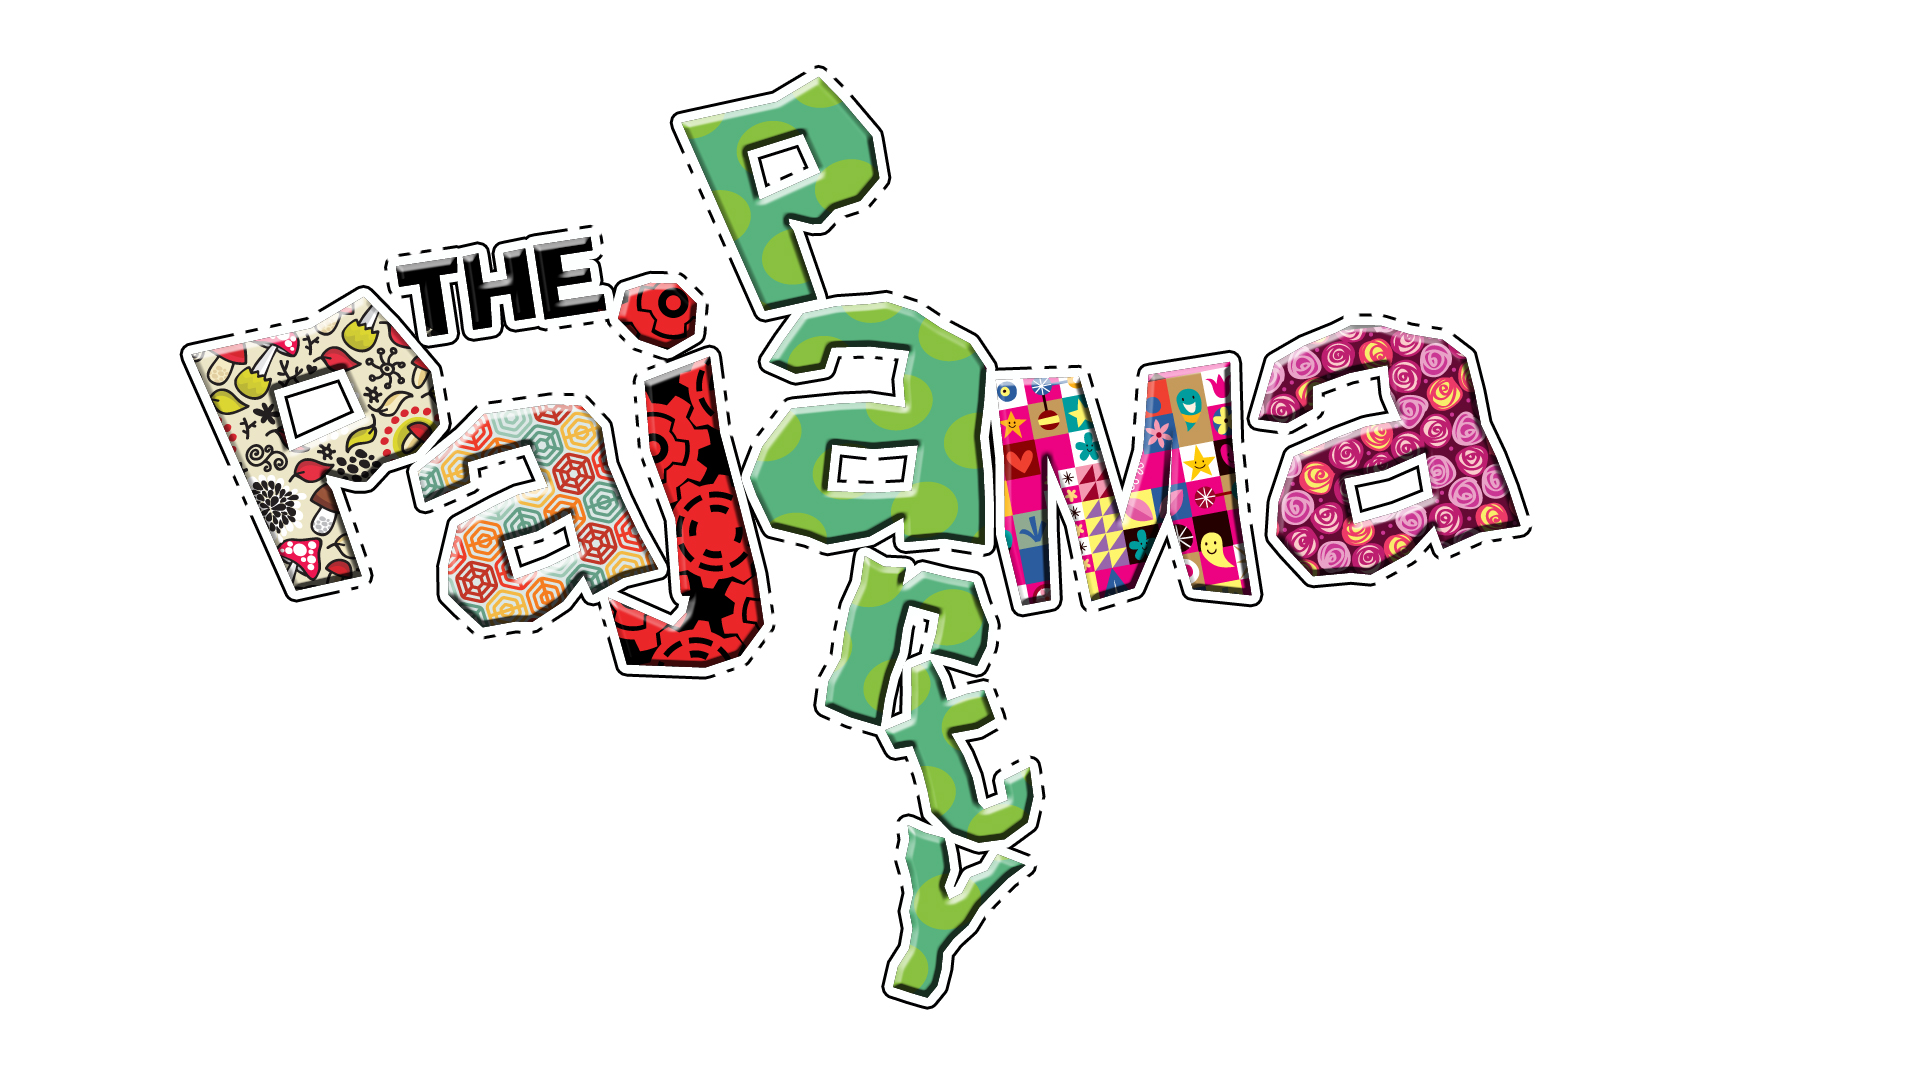 Danse clipart contemporary dance Pajama Clip Art Graphic Party